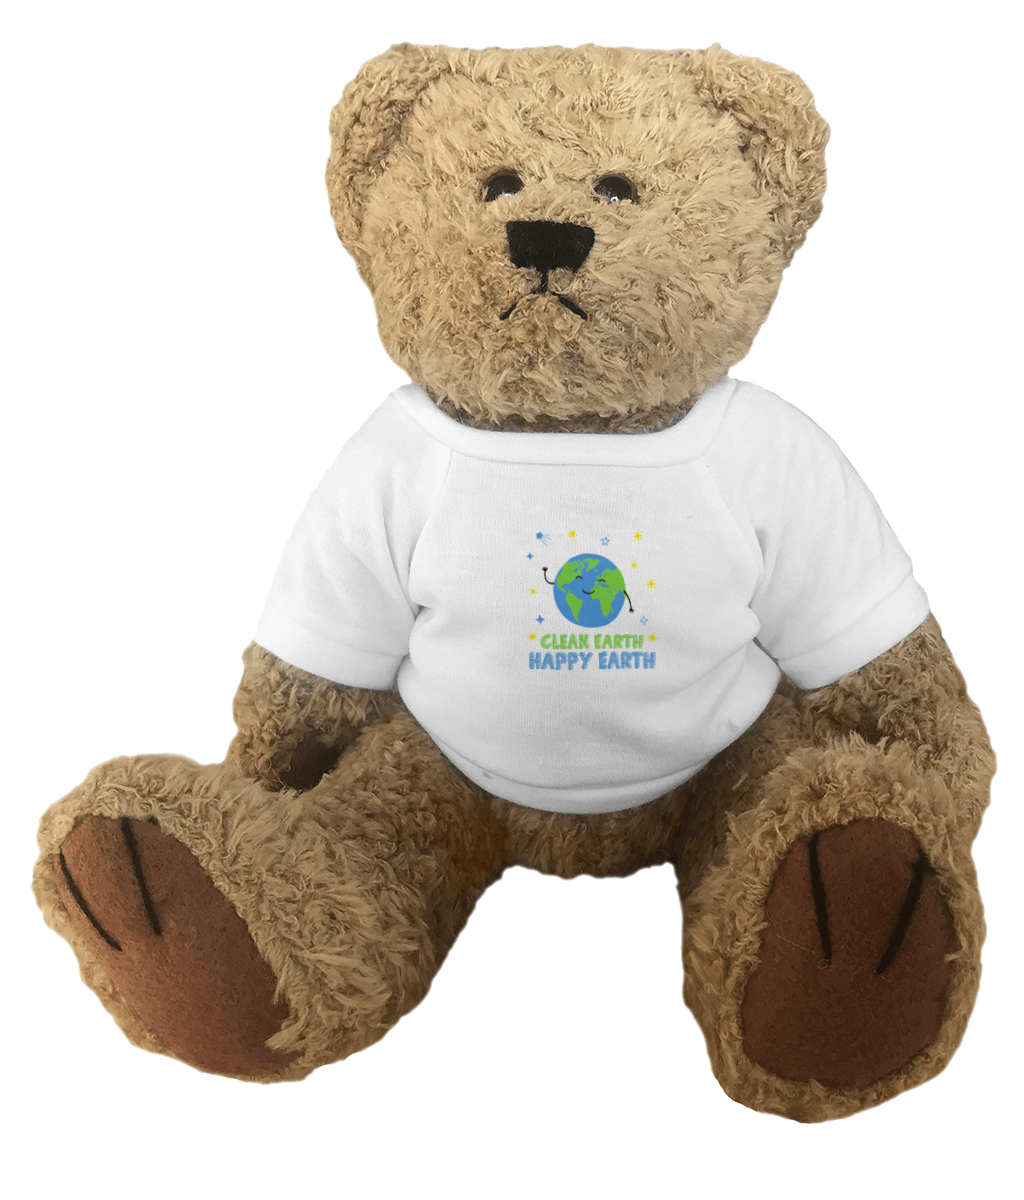 Clean Earth Teddy Bear